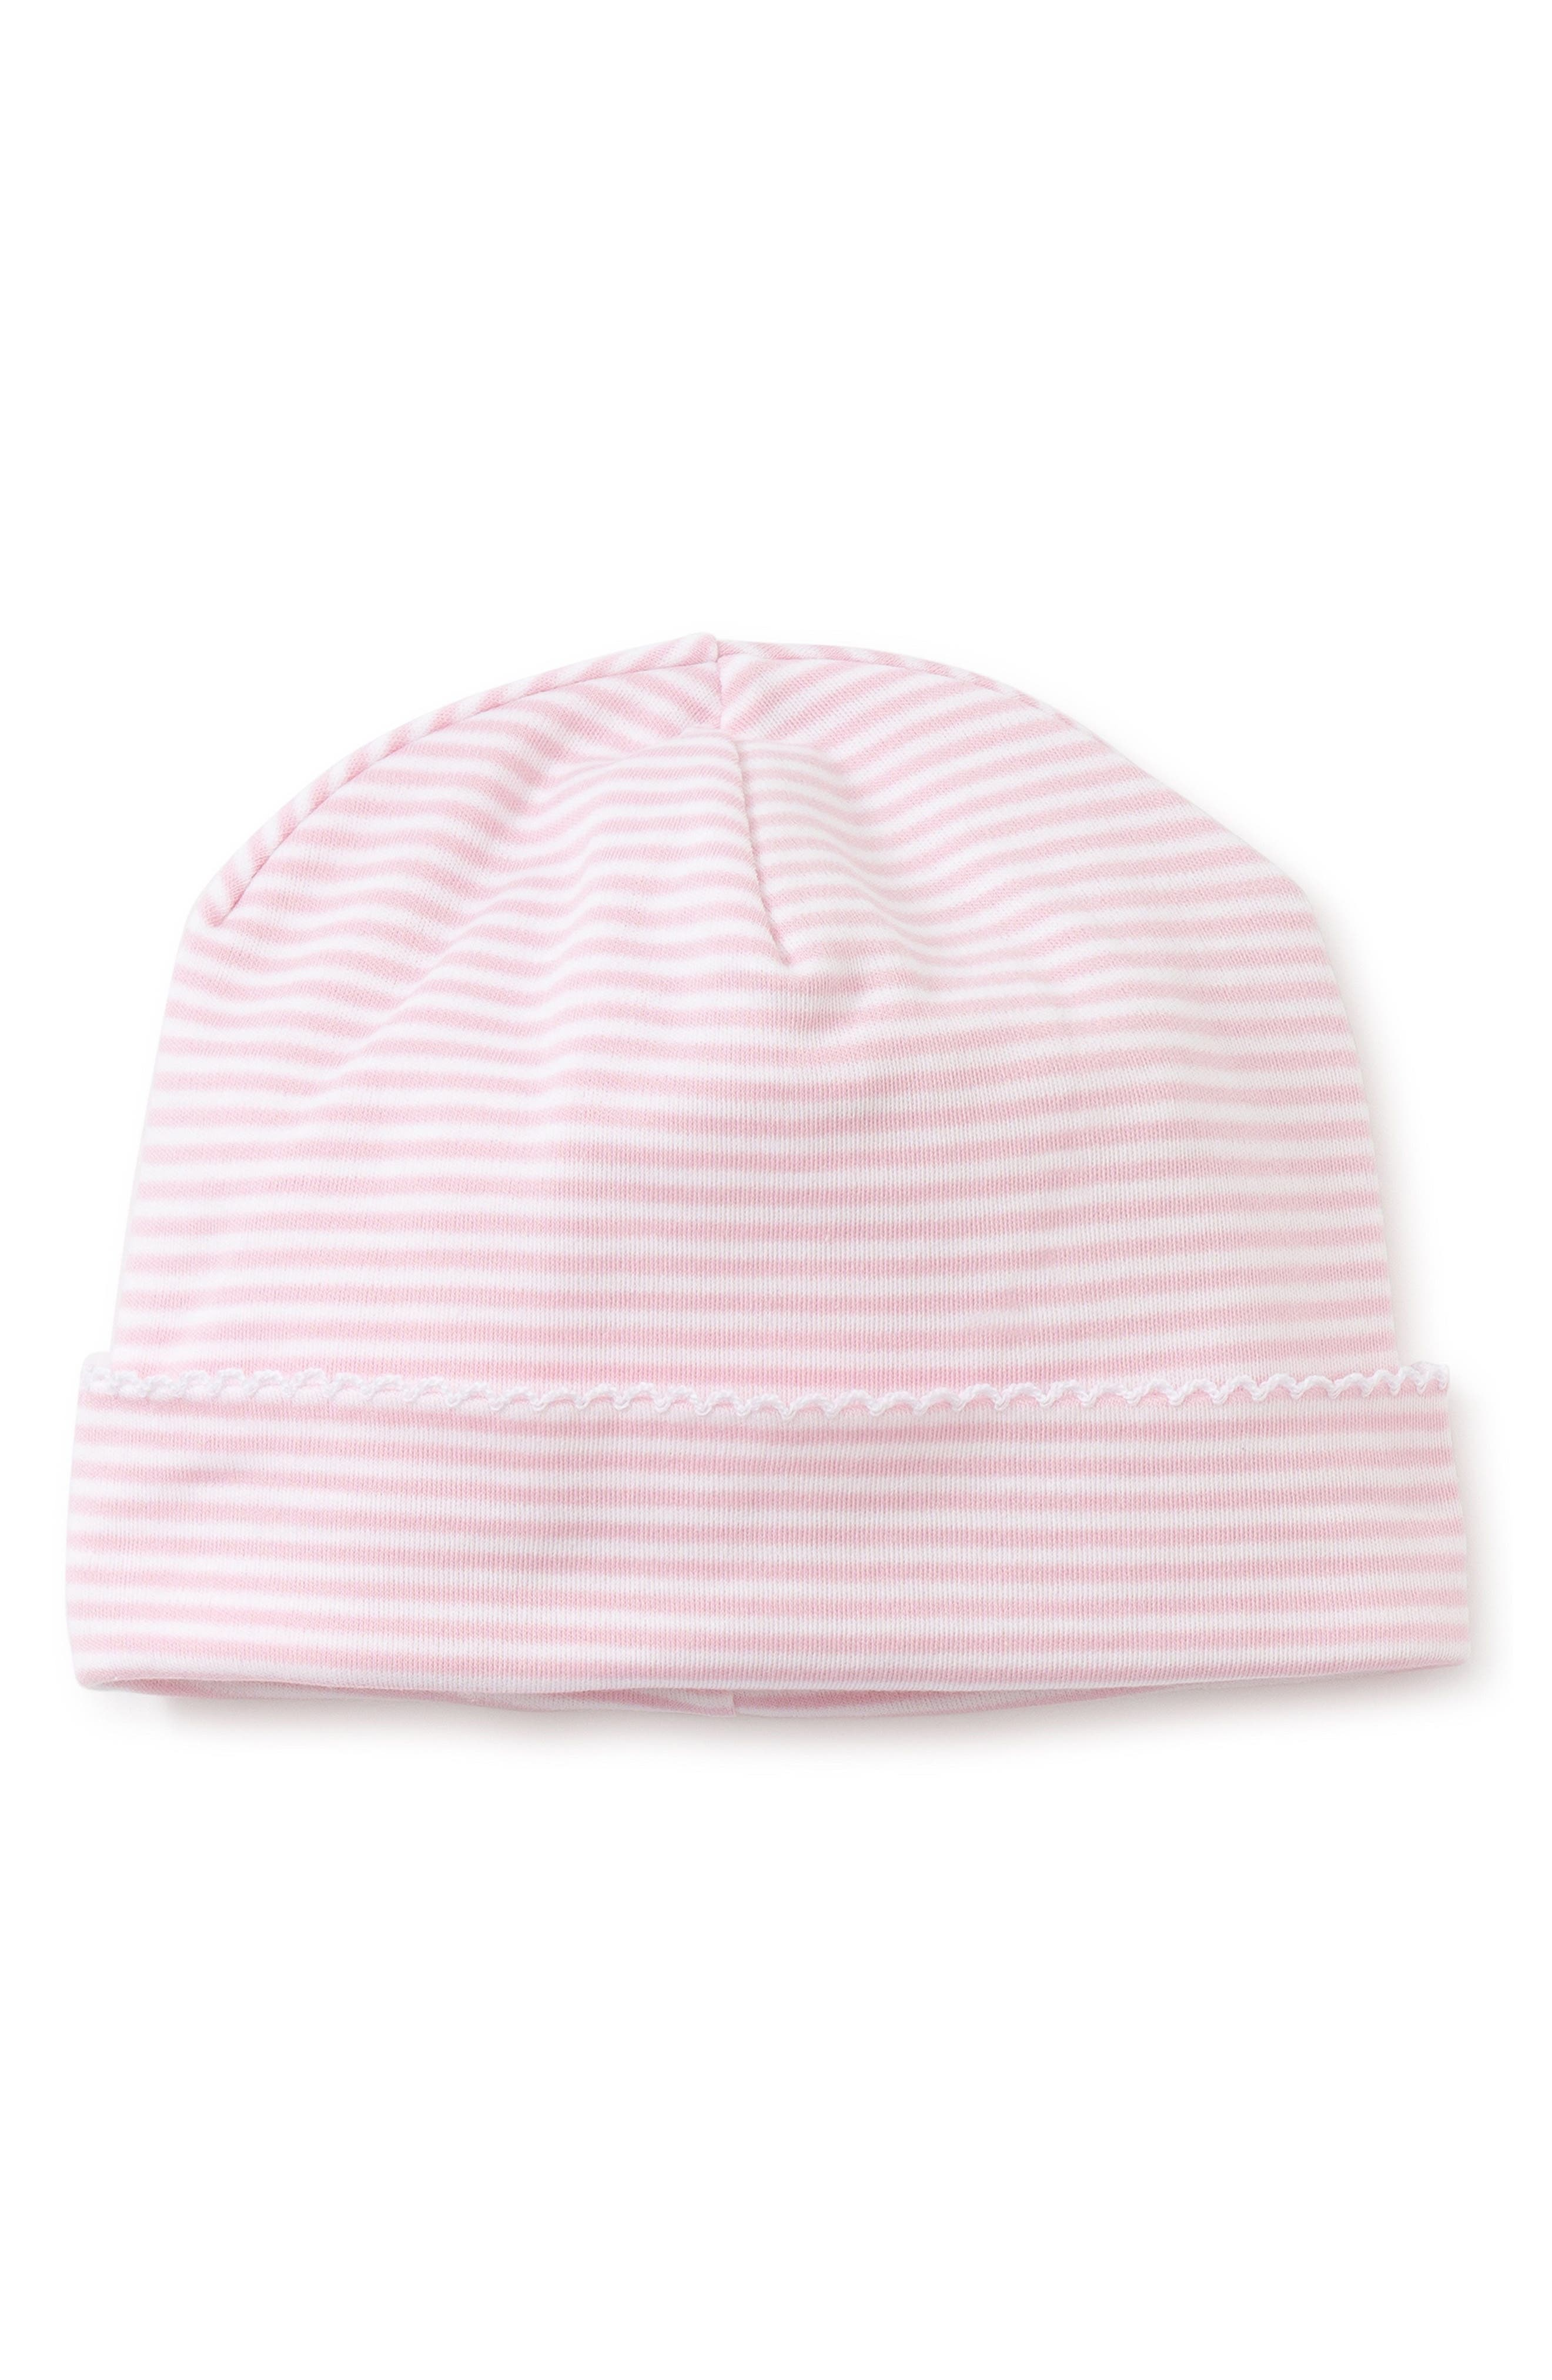 Simple Stripes Beanie Hat,                         Main,                         color, PINK